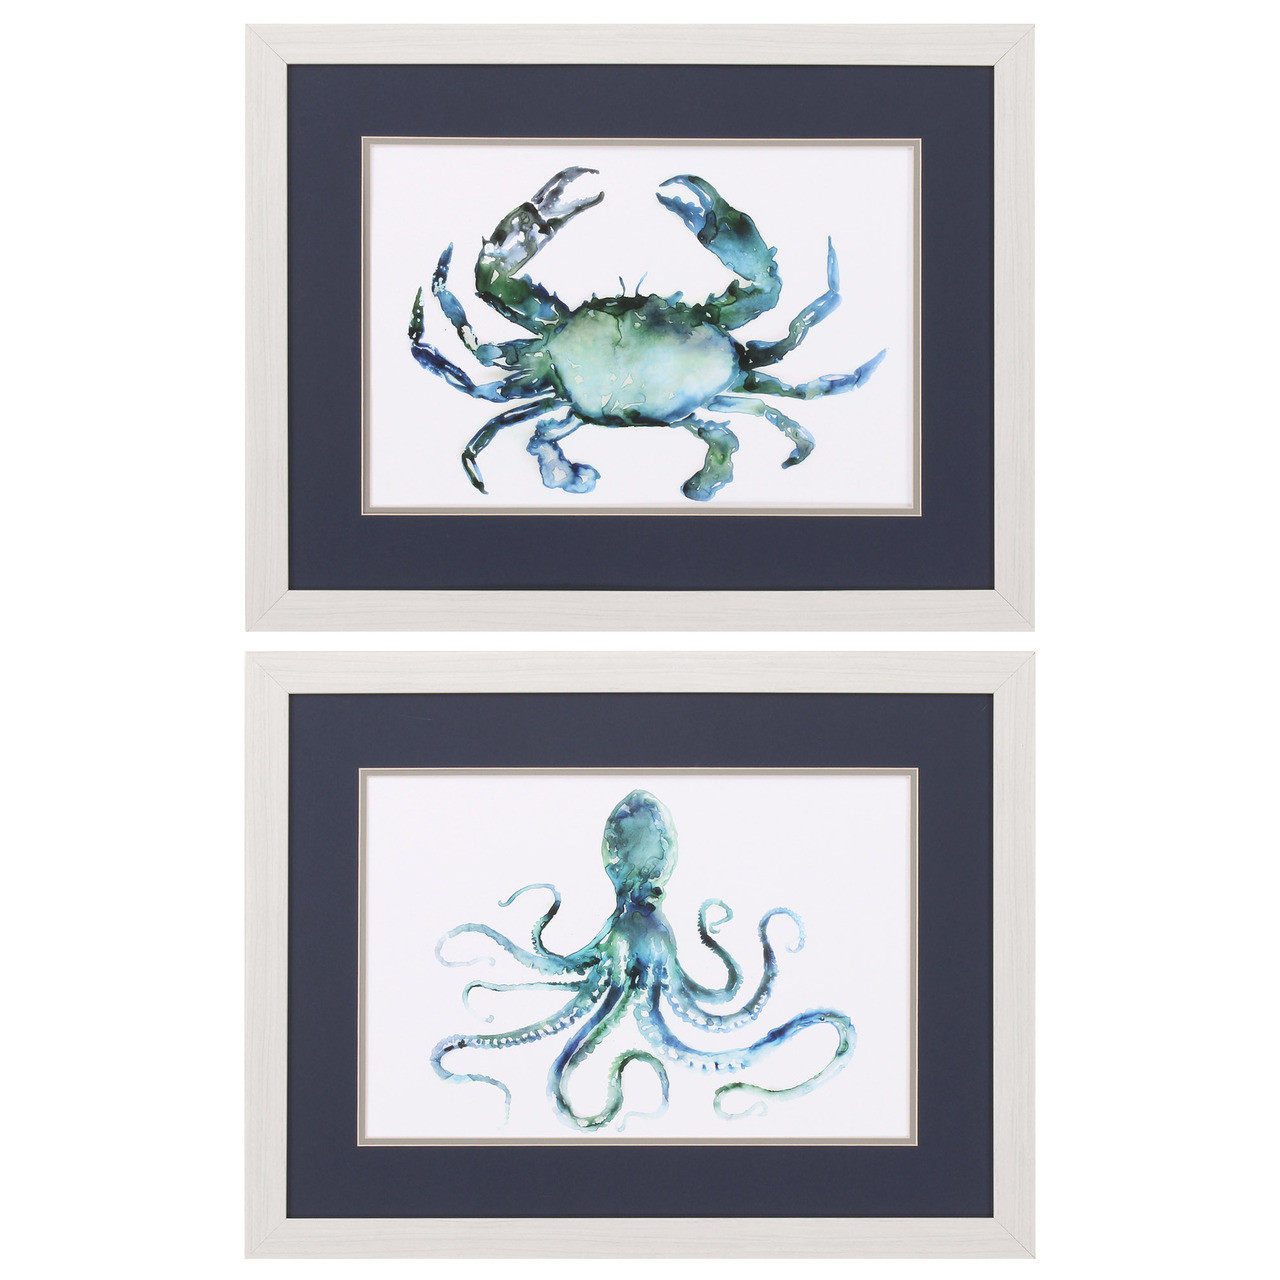 Blue Octopus And Crab Prints Set Of 2